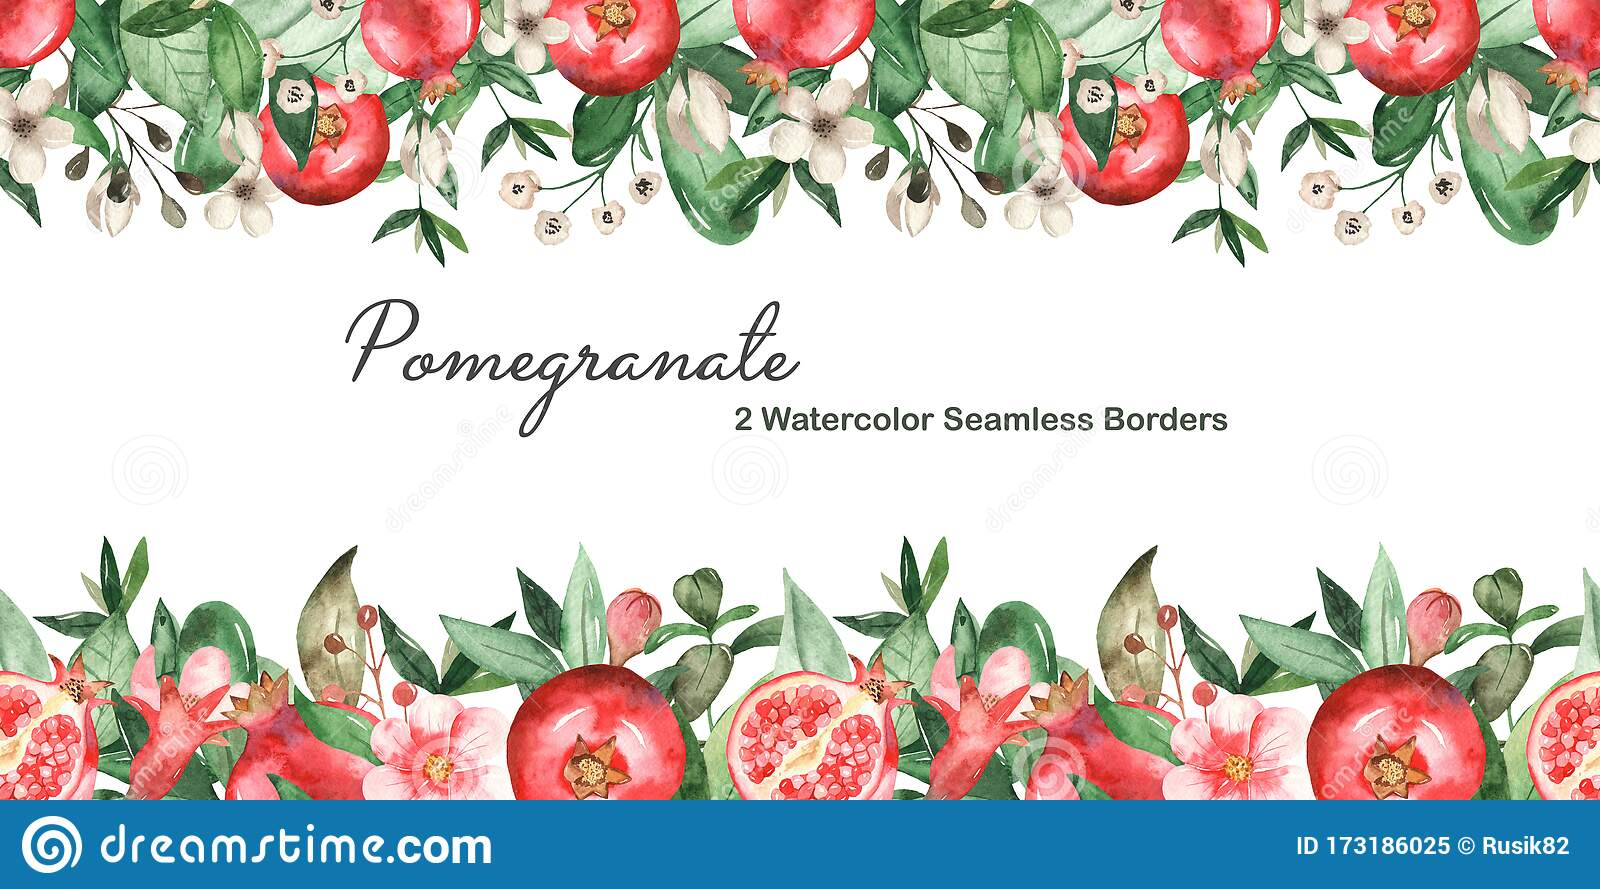 2 Watercolor Seamless Border With Pomegranate Stock ...